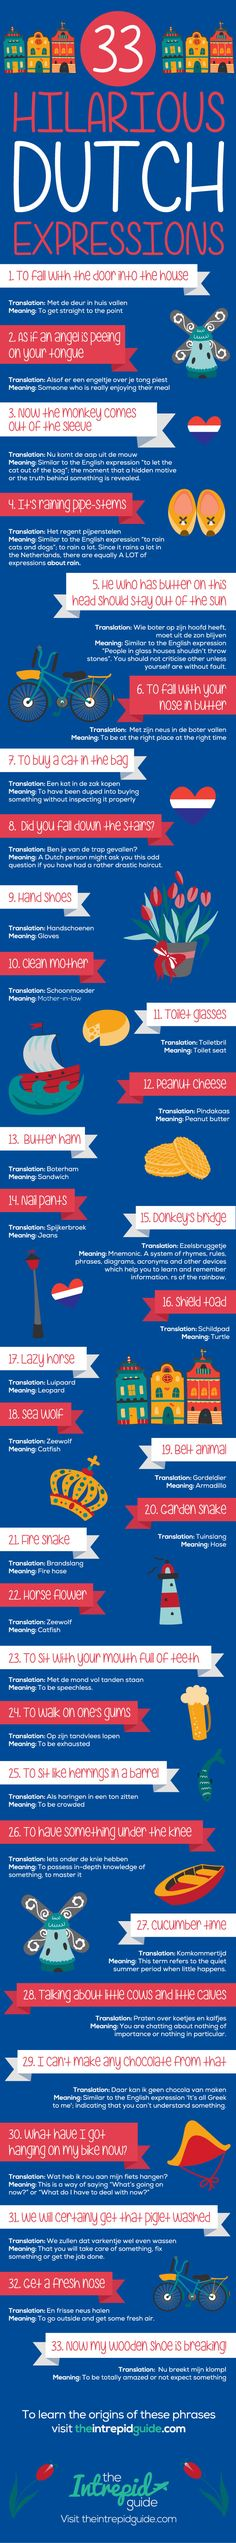 funny dutch phrases Idioms and expressions infographic They say roughly of our everyday speech is made up of expressions. Well, the Dutch probably use closer to Here are 33 Dutch phrases and idioms. Dutch Phrases, Rotterdam, Learn Dutch, Dutch People, Going Dutch, Dutch Language, Dutch Recipes, Amish Recipes, Thinking Day